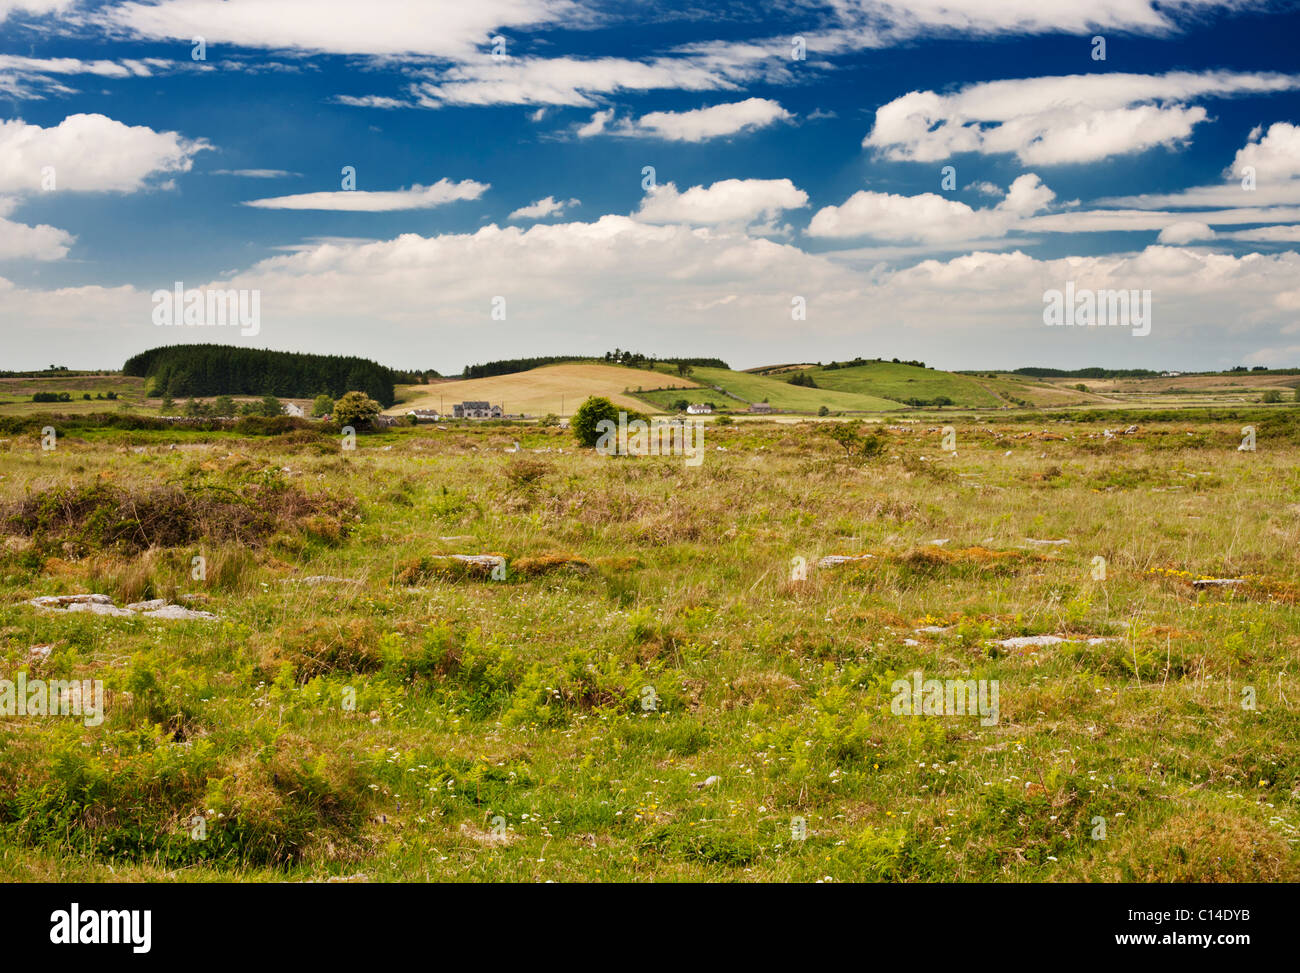 Drumlin (egg basket) topography near Kilfenora, County Clare, Ireland - Stock Image